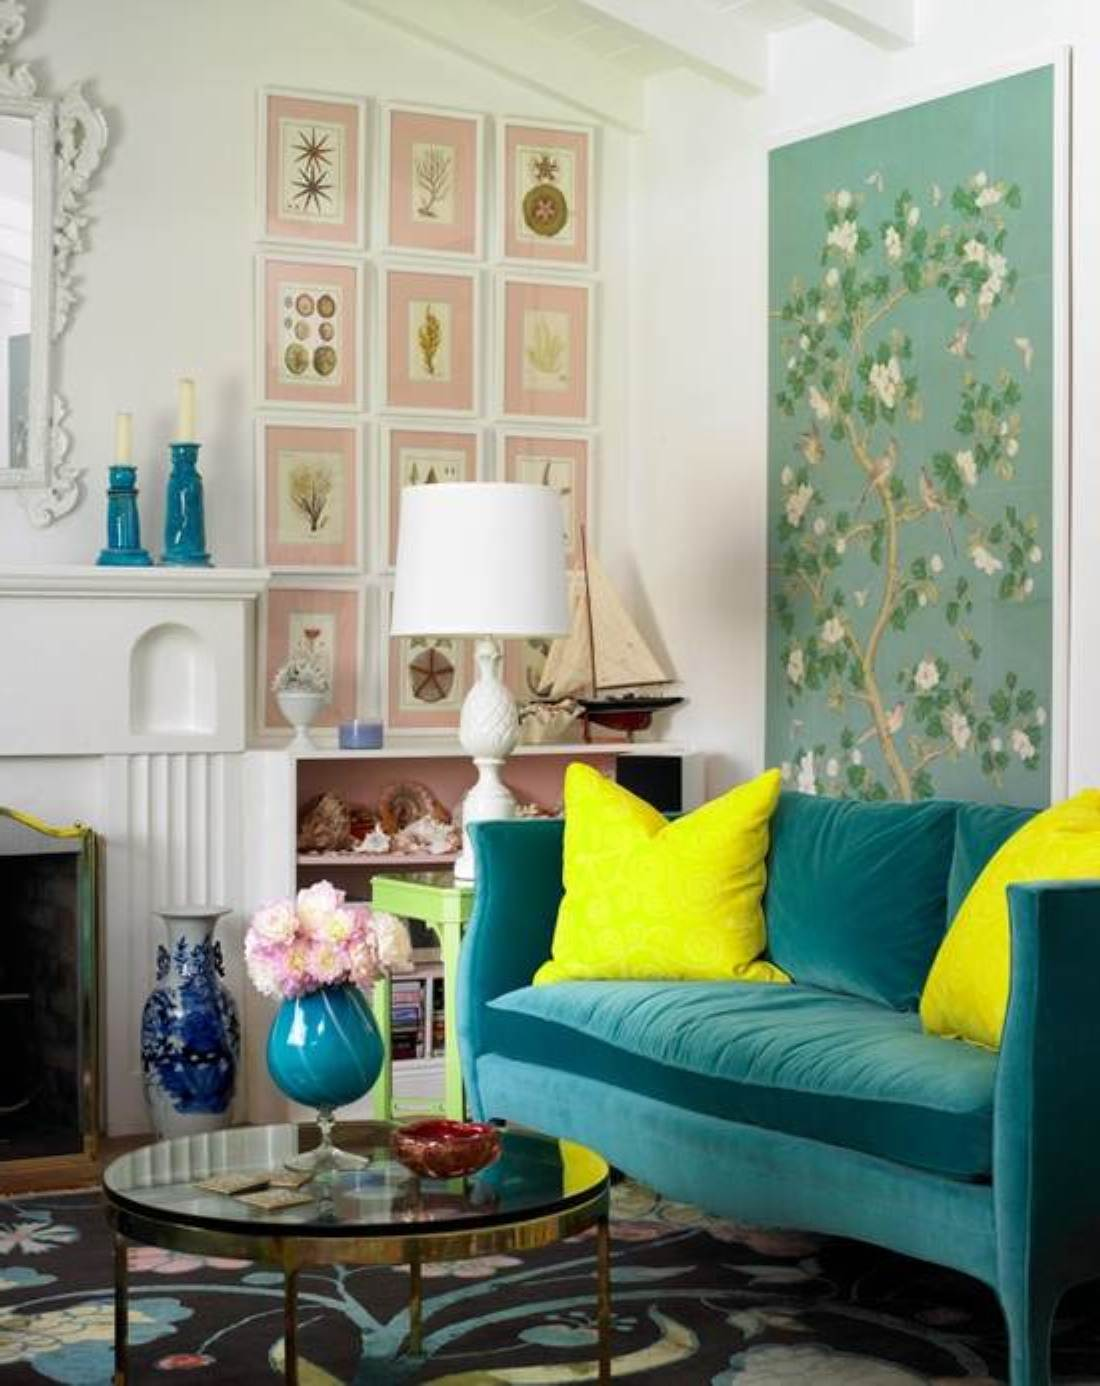 30 amazing small spaces living room design ideas - Small living room colors ...